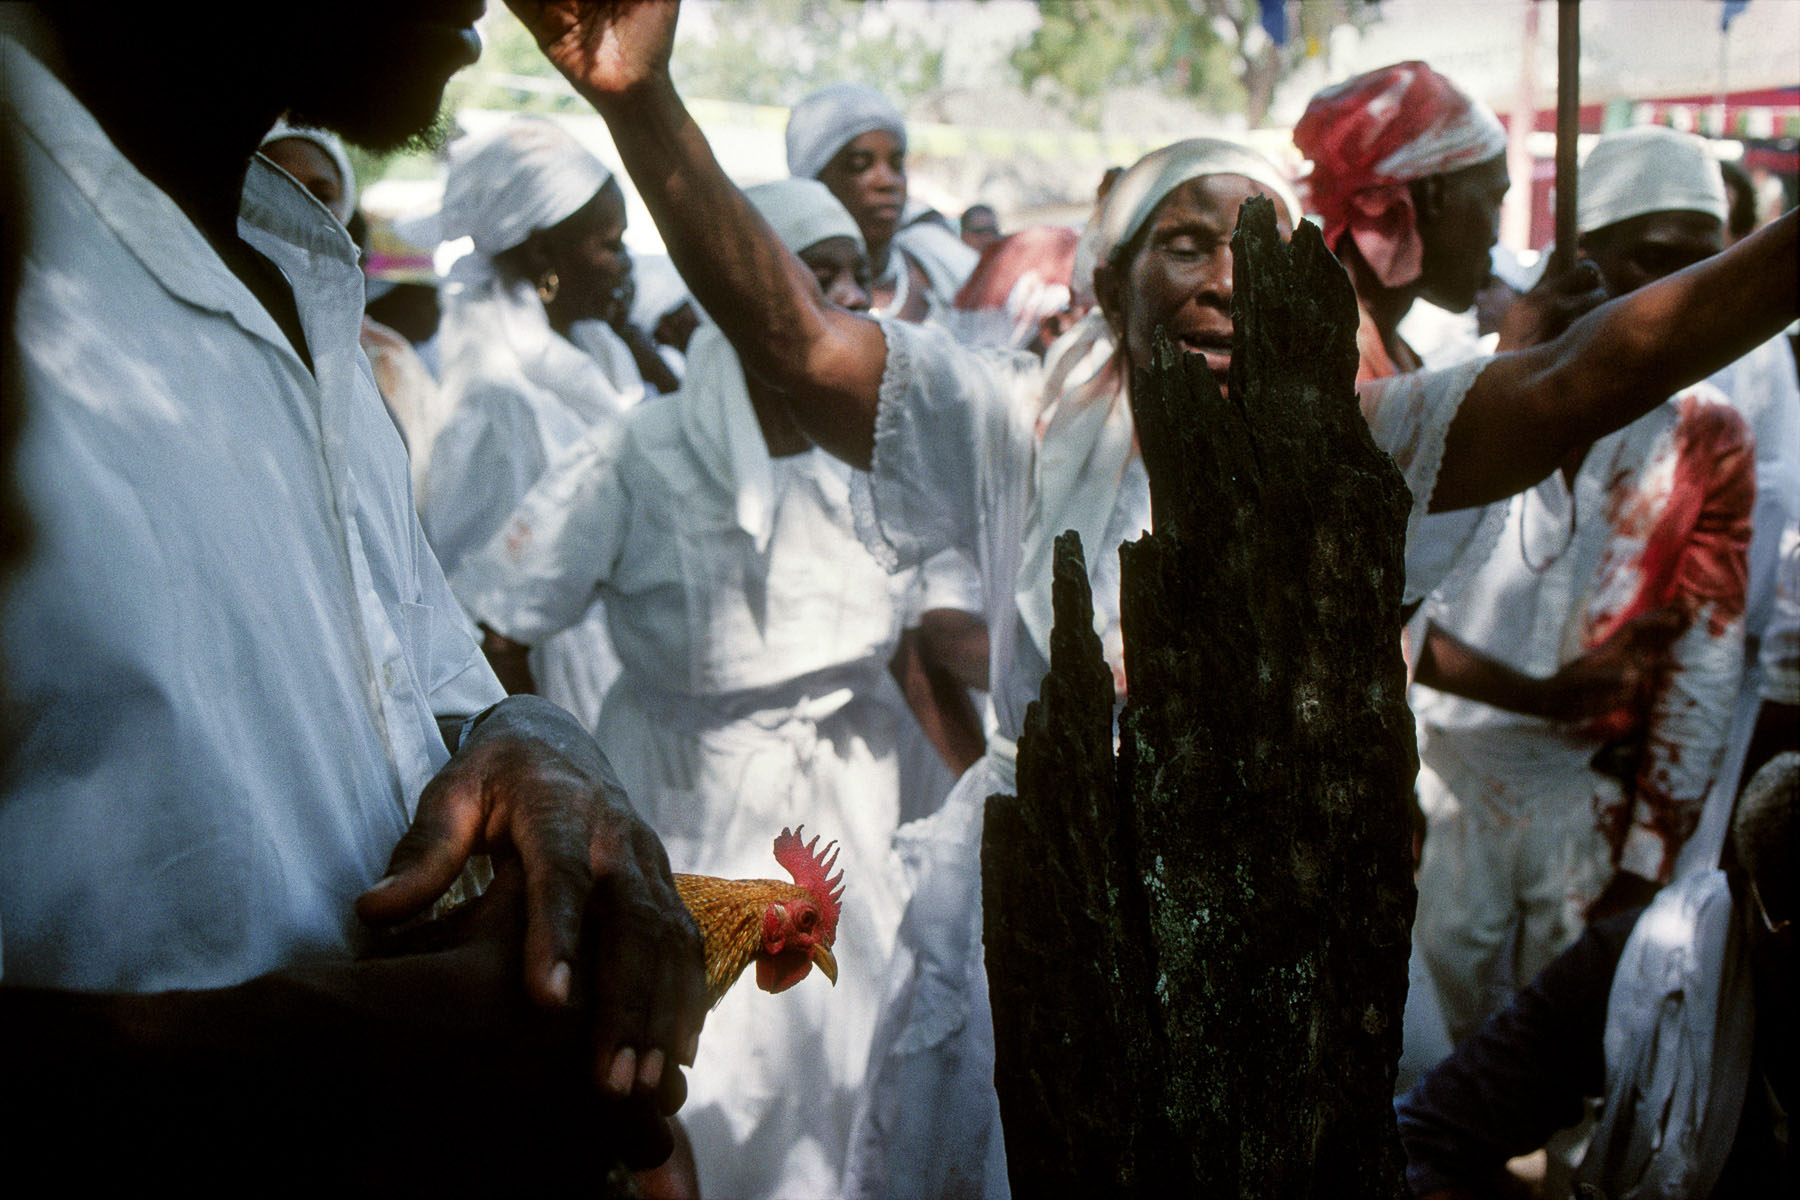 On Easter weekend the community of Lakou de Souvenance organizing their big annual gathering in April 1996